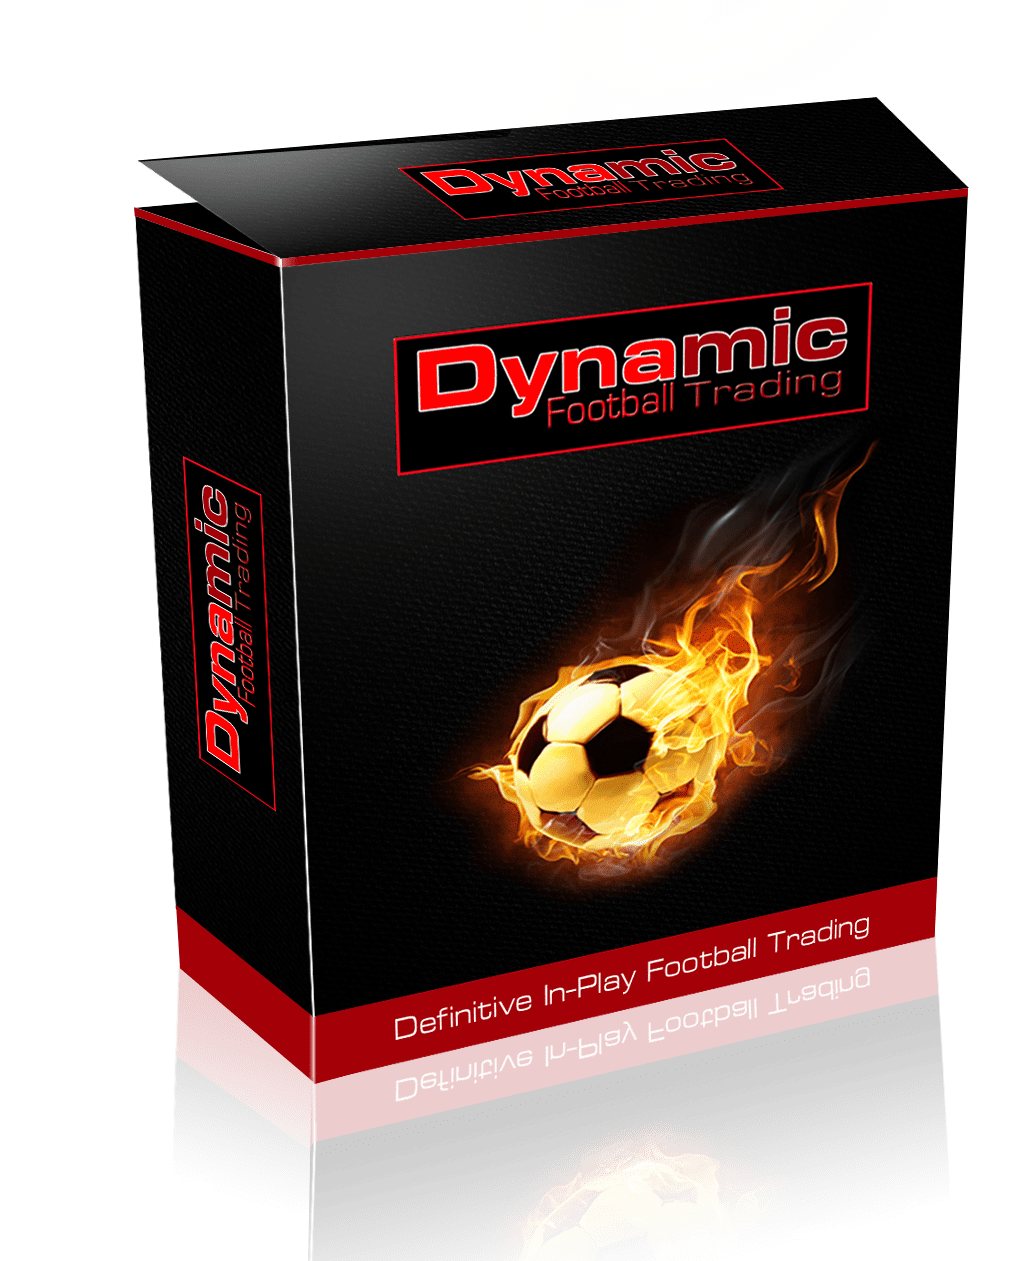 Inplay football trading strategy